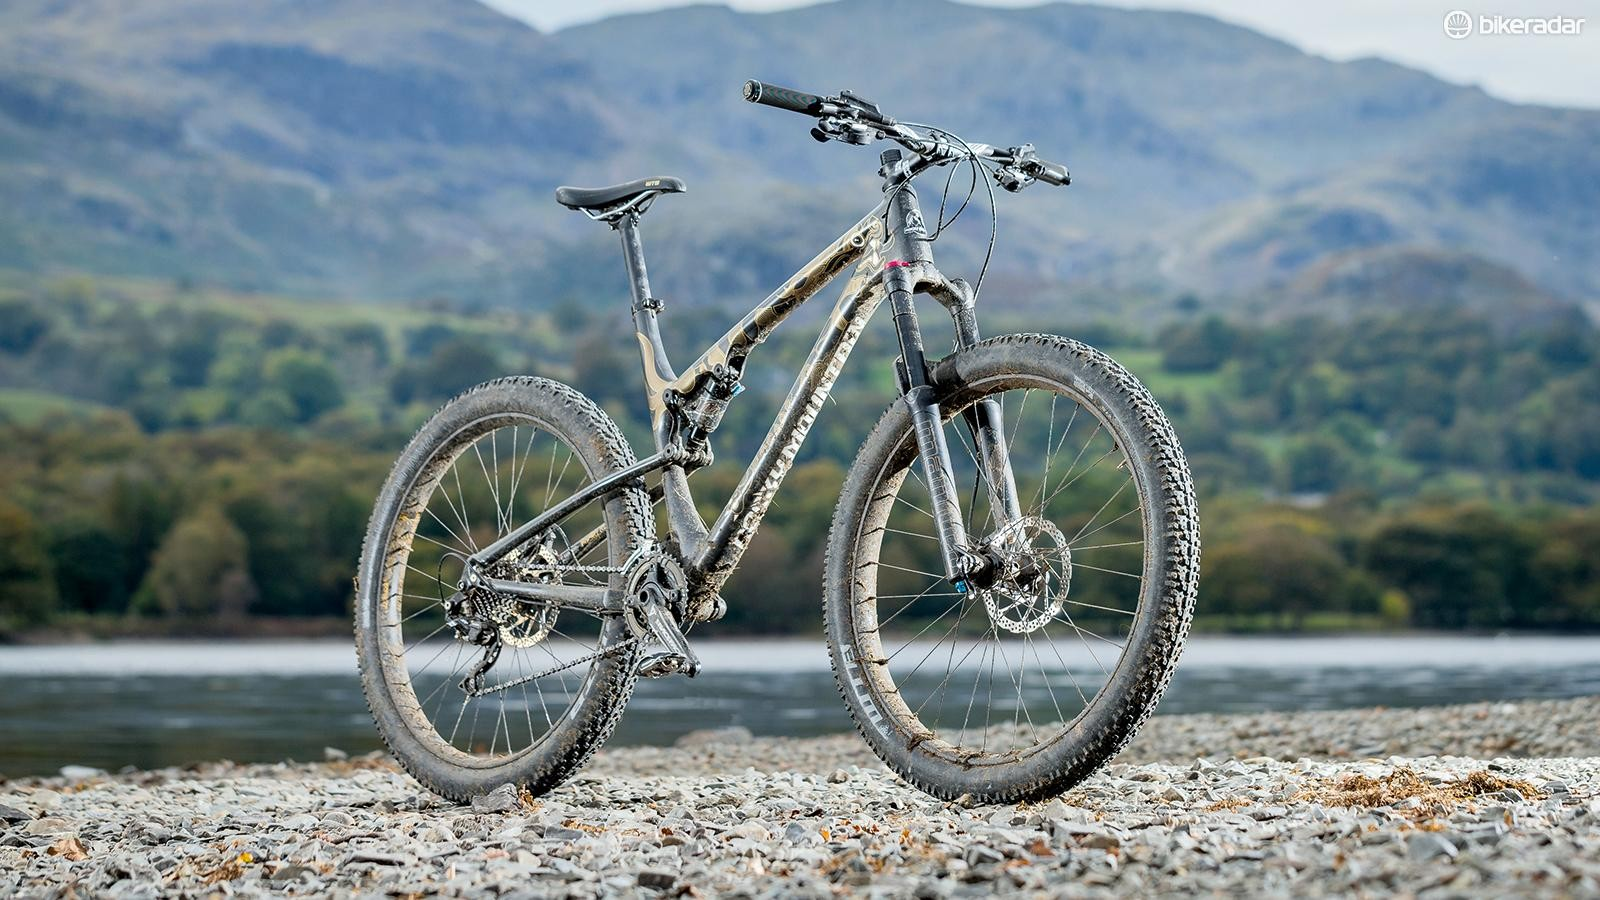 Rocky Mountain's Sherpa doesn't pretend to be a trail bike, but it's pretty good at its intended bikepacking function